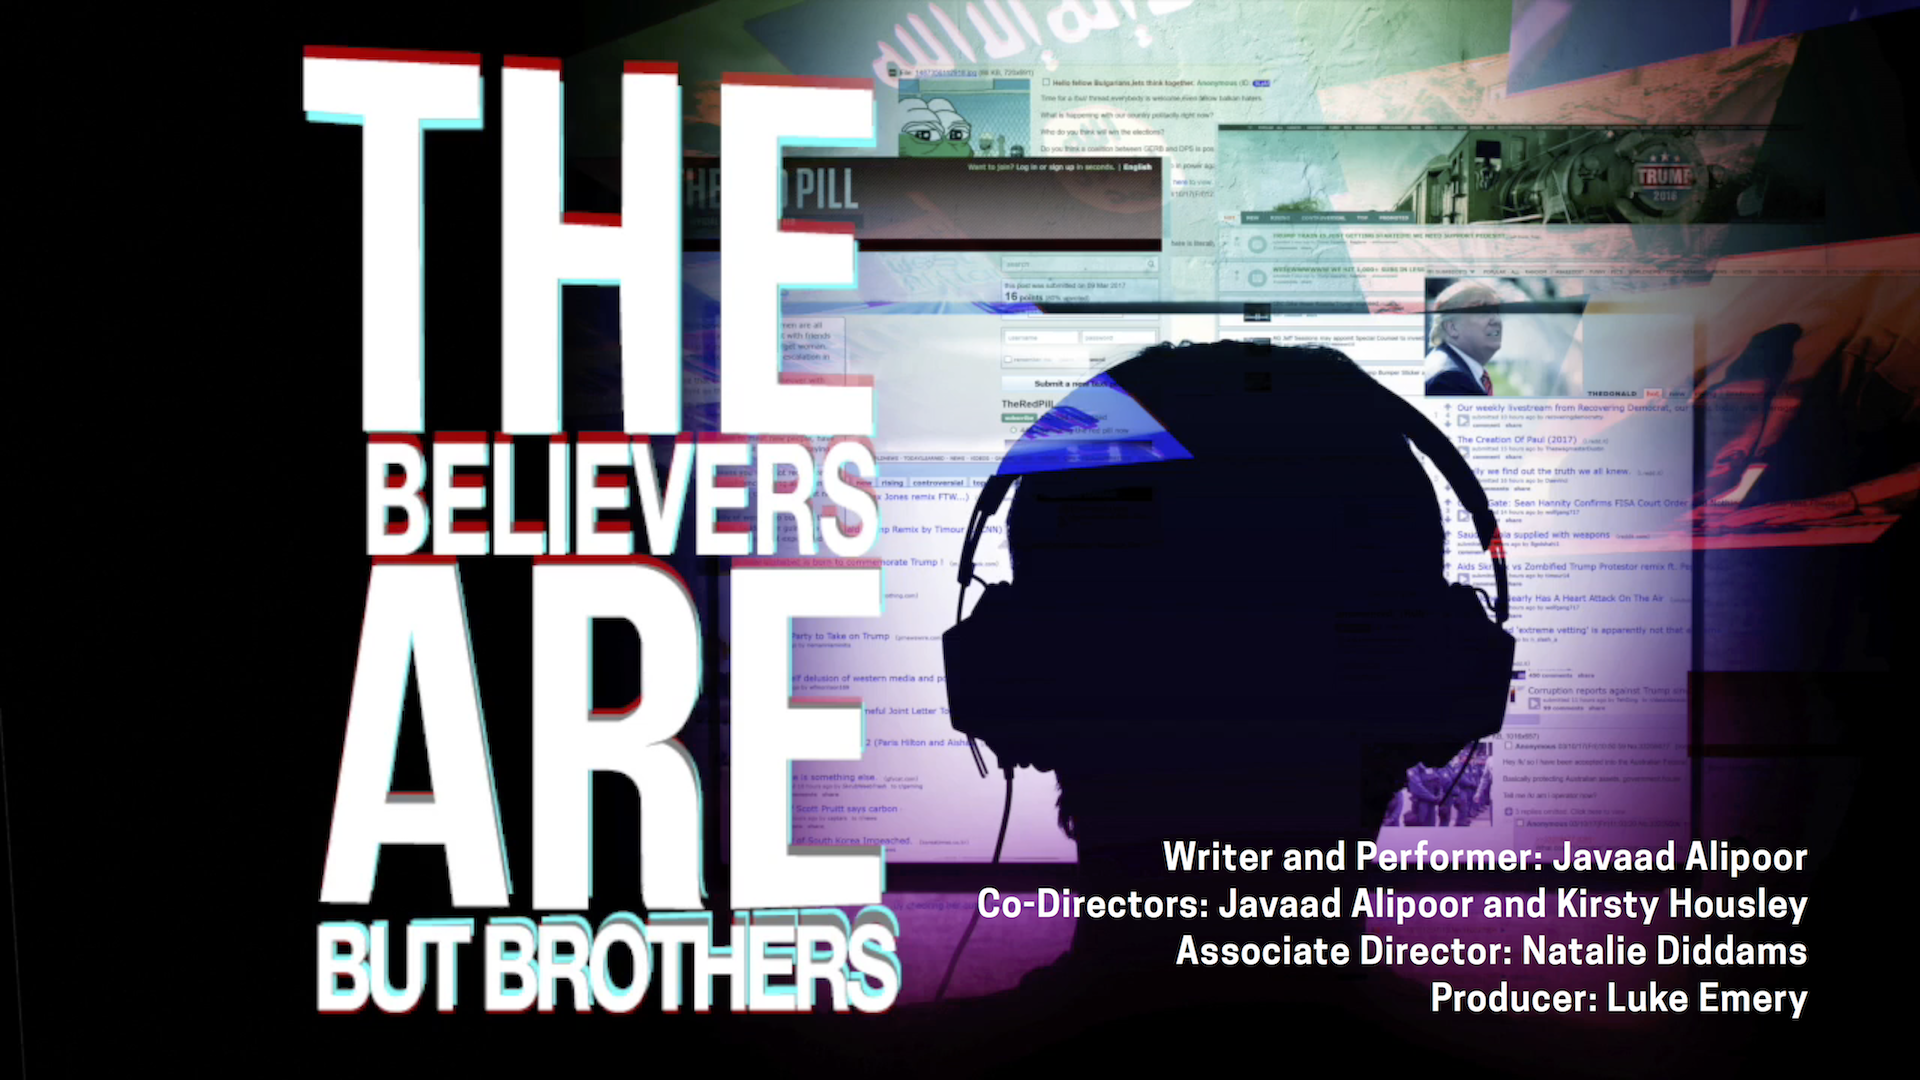 Believers Are But Brothers credits